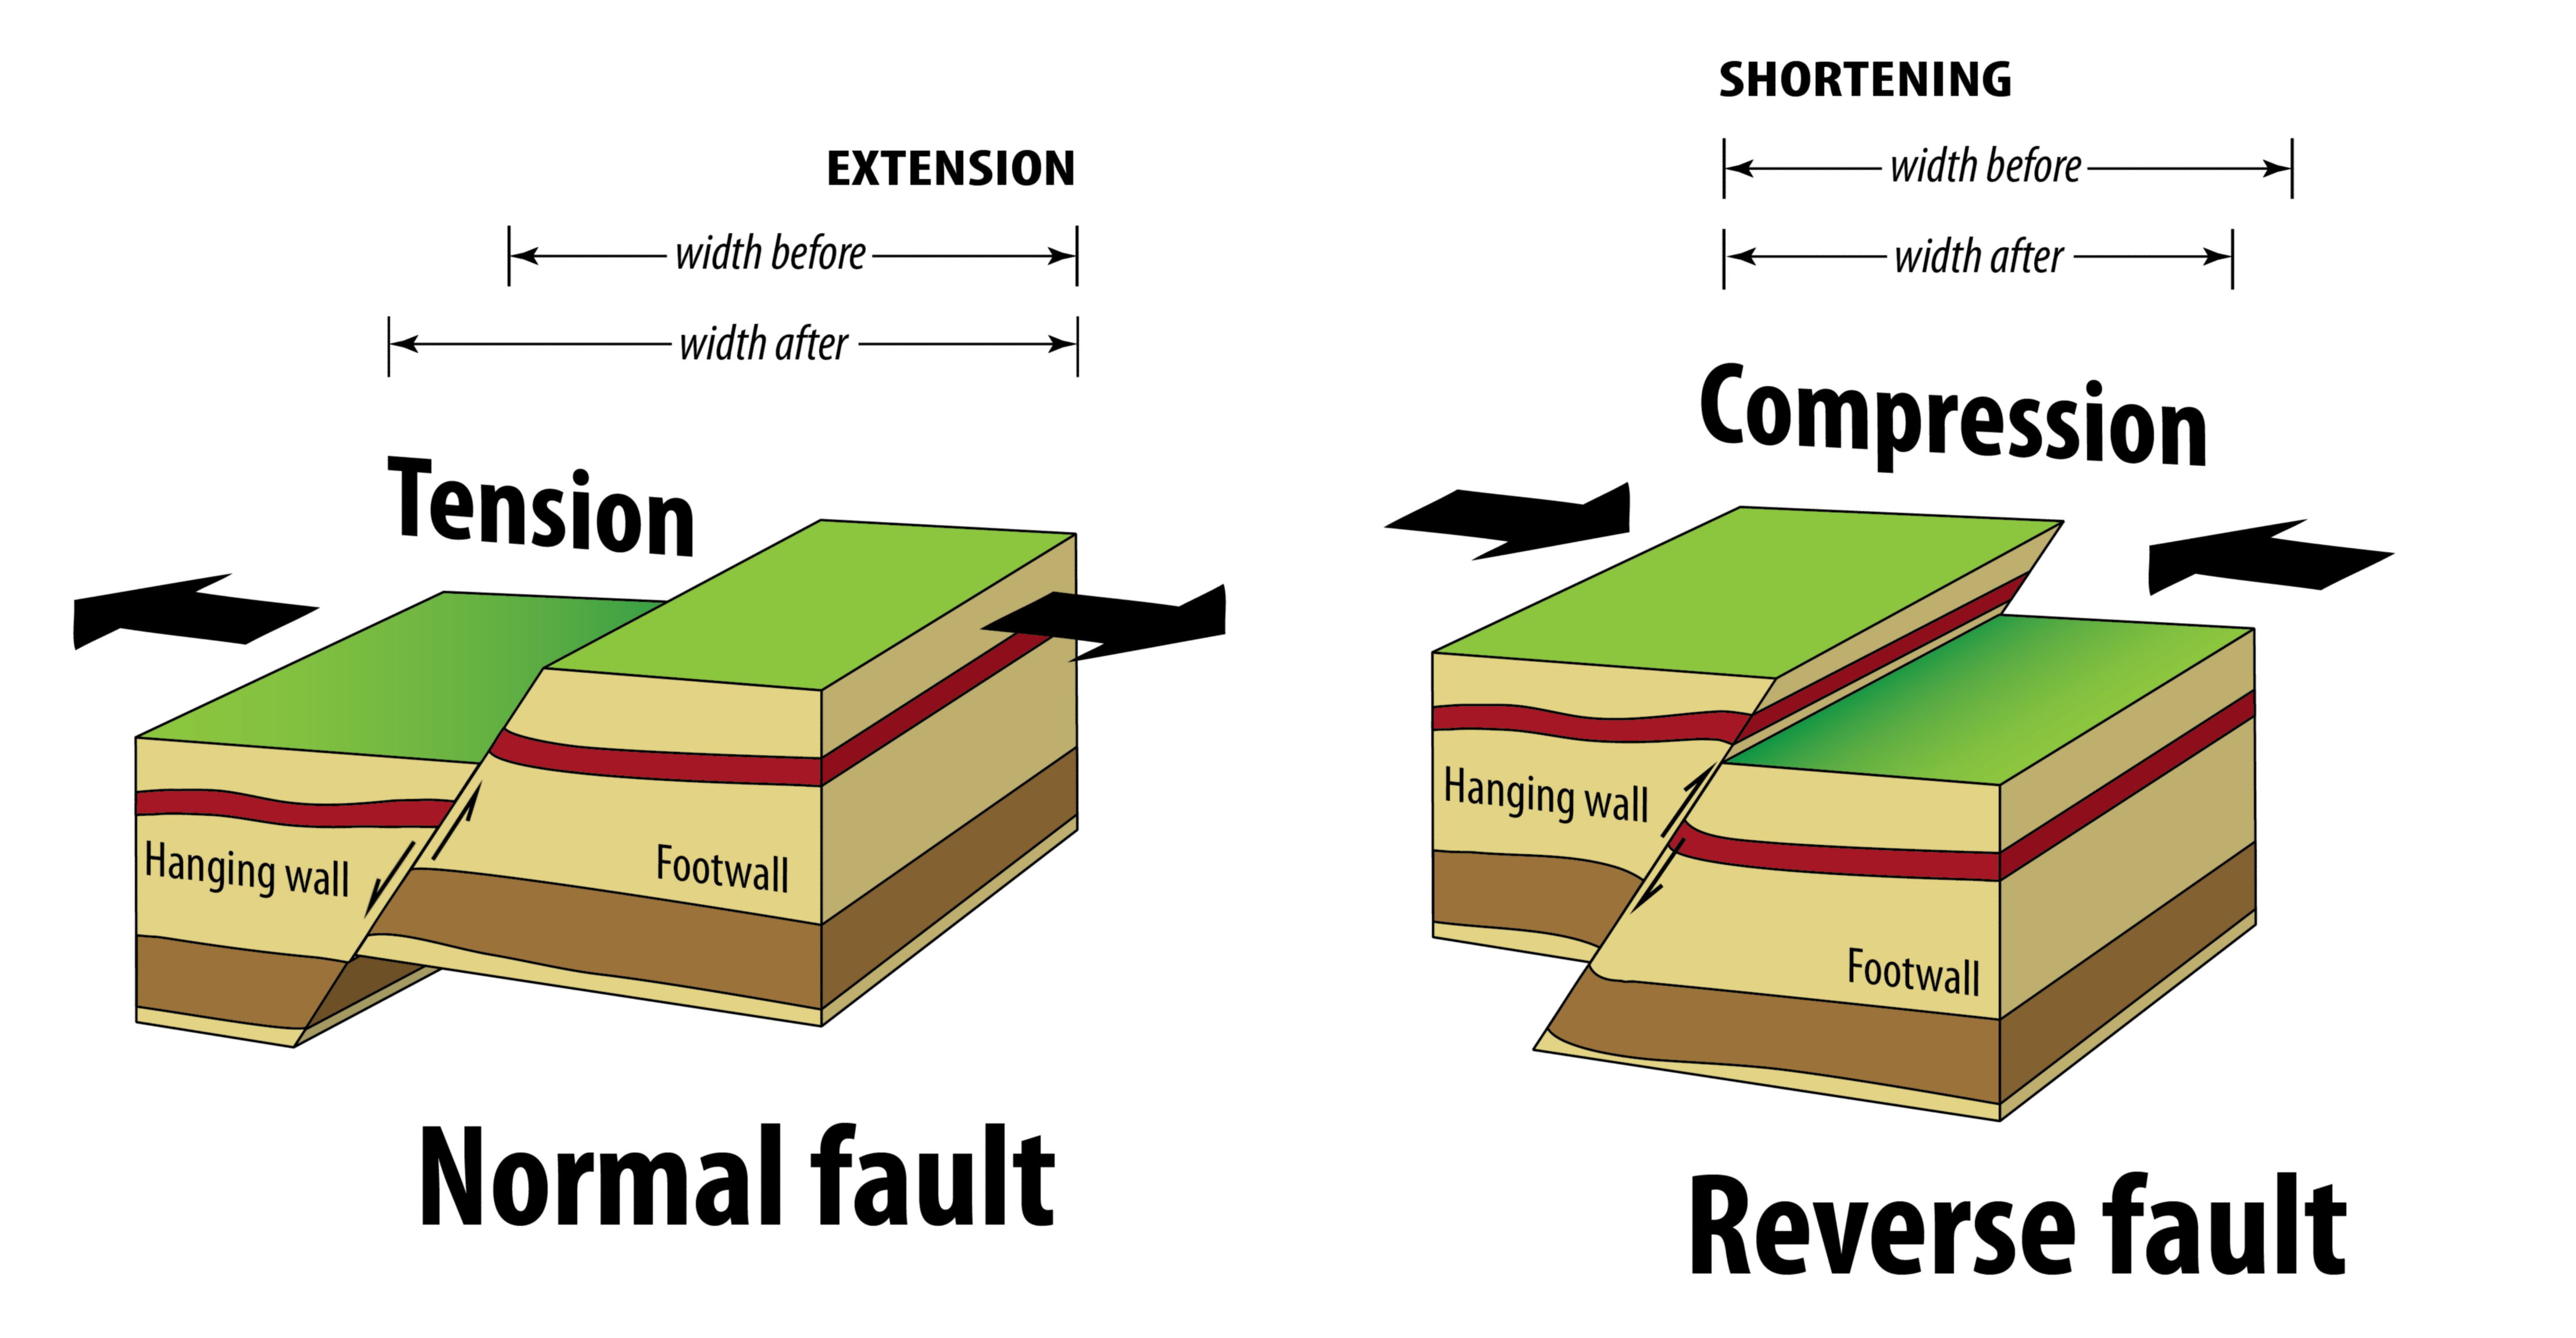 13.3 Fractures, Joints, and Faults - Physical Geology ...